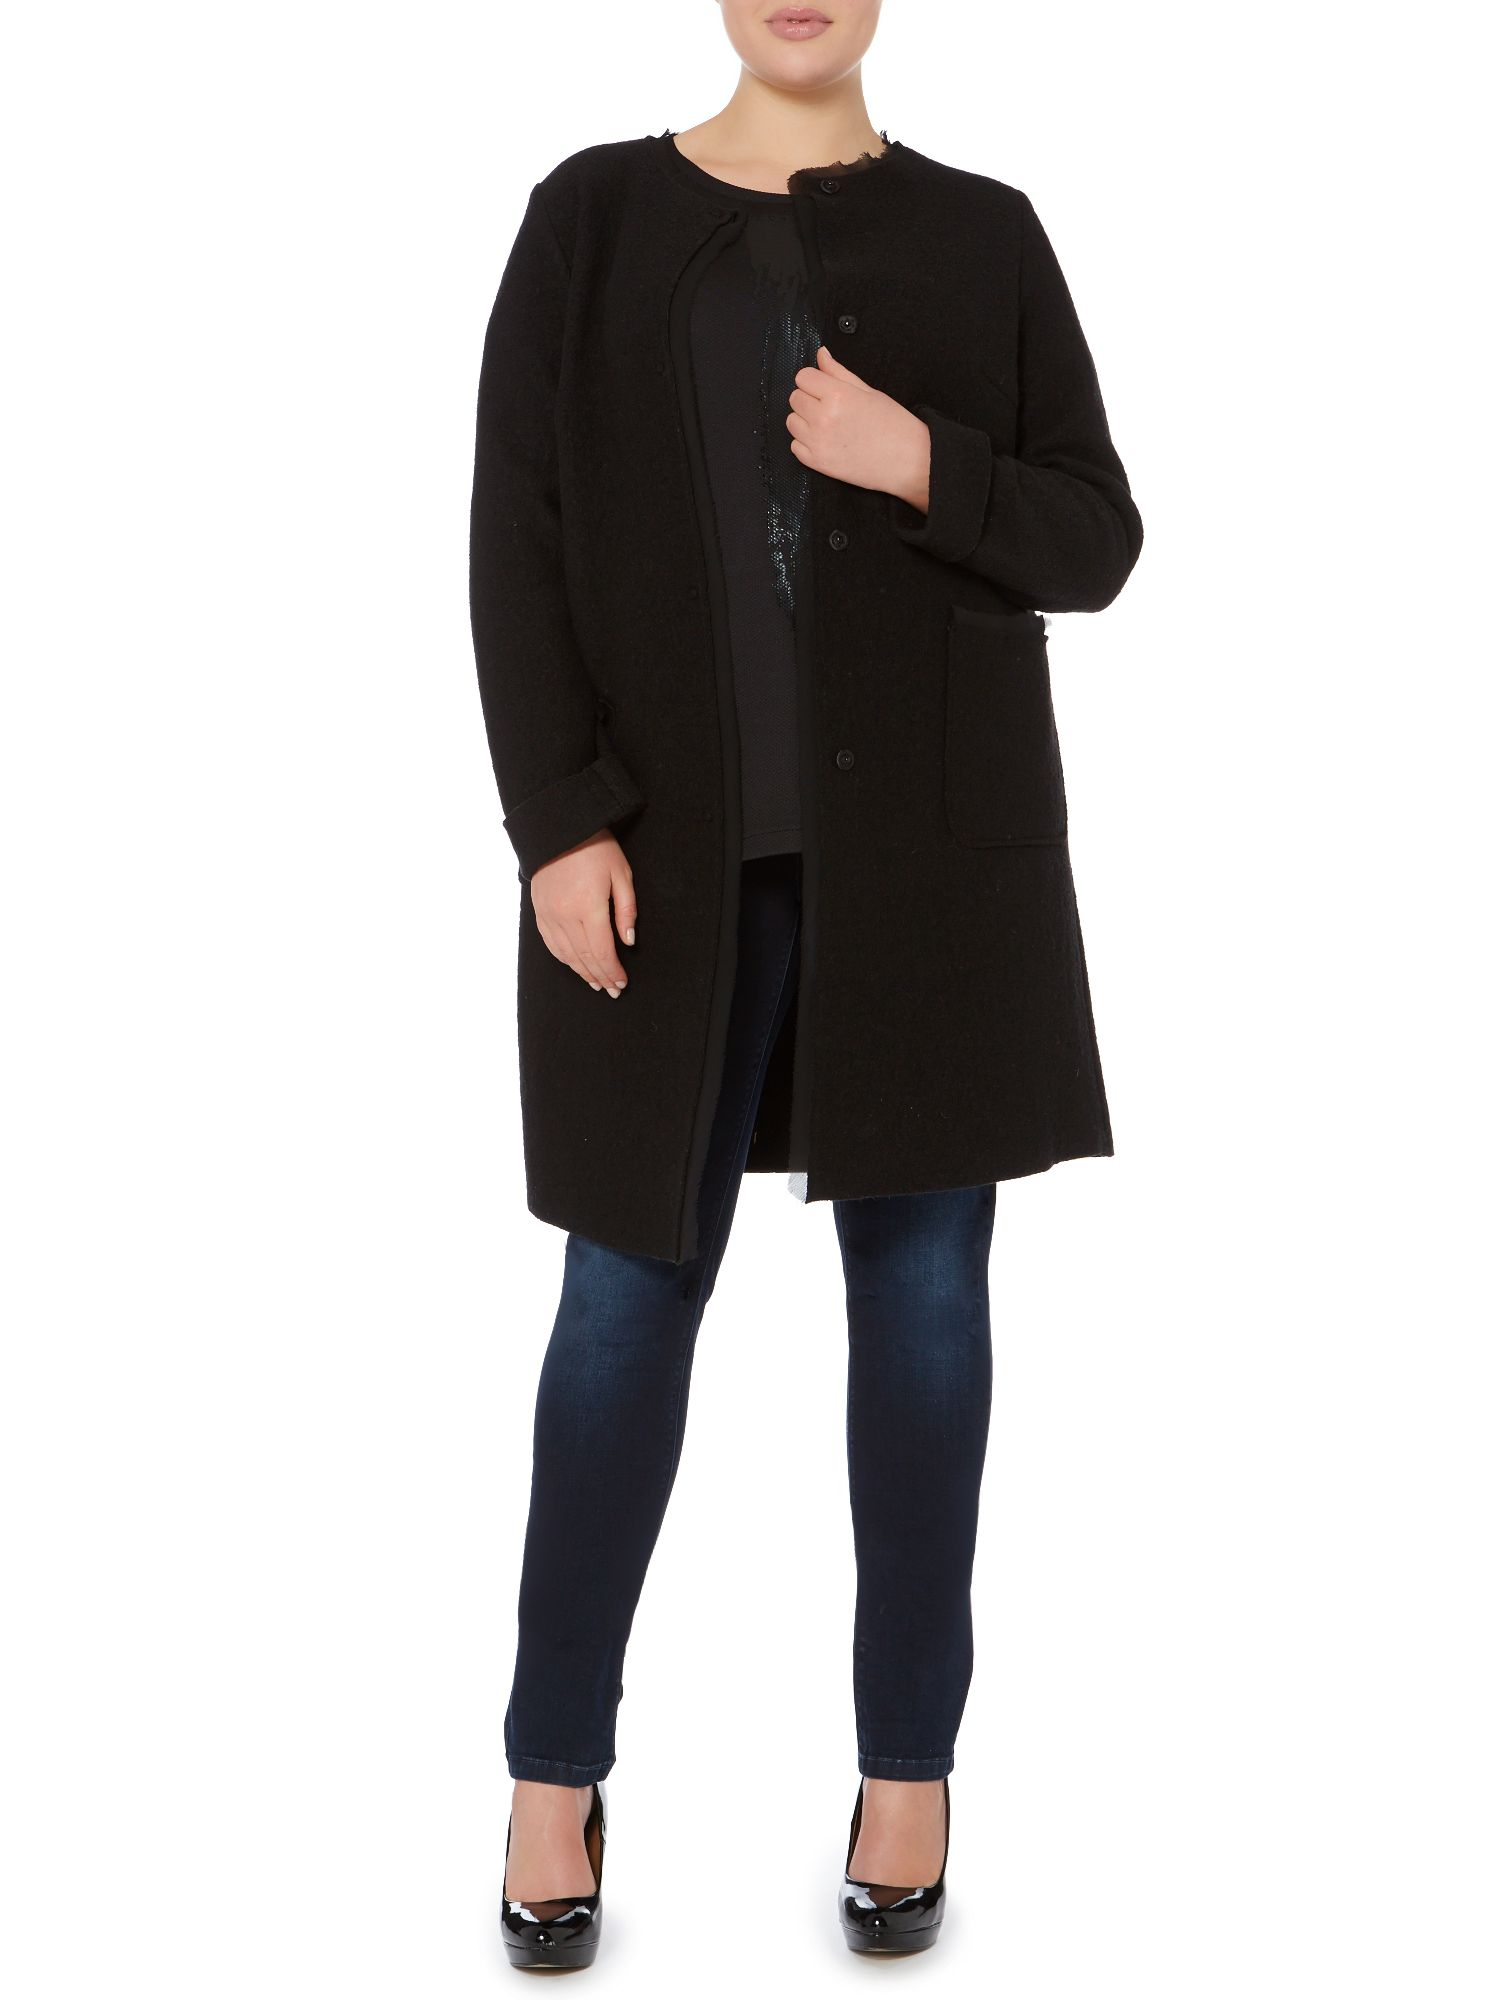 Notturno long sleeved wool cardigan coat